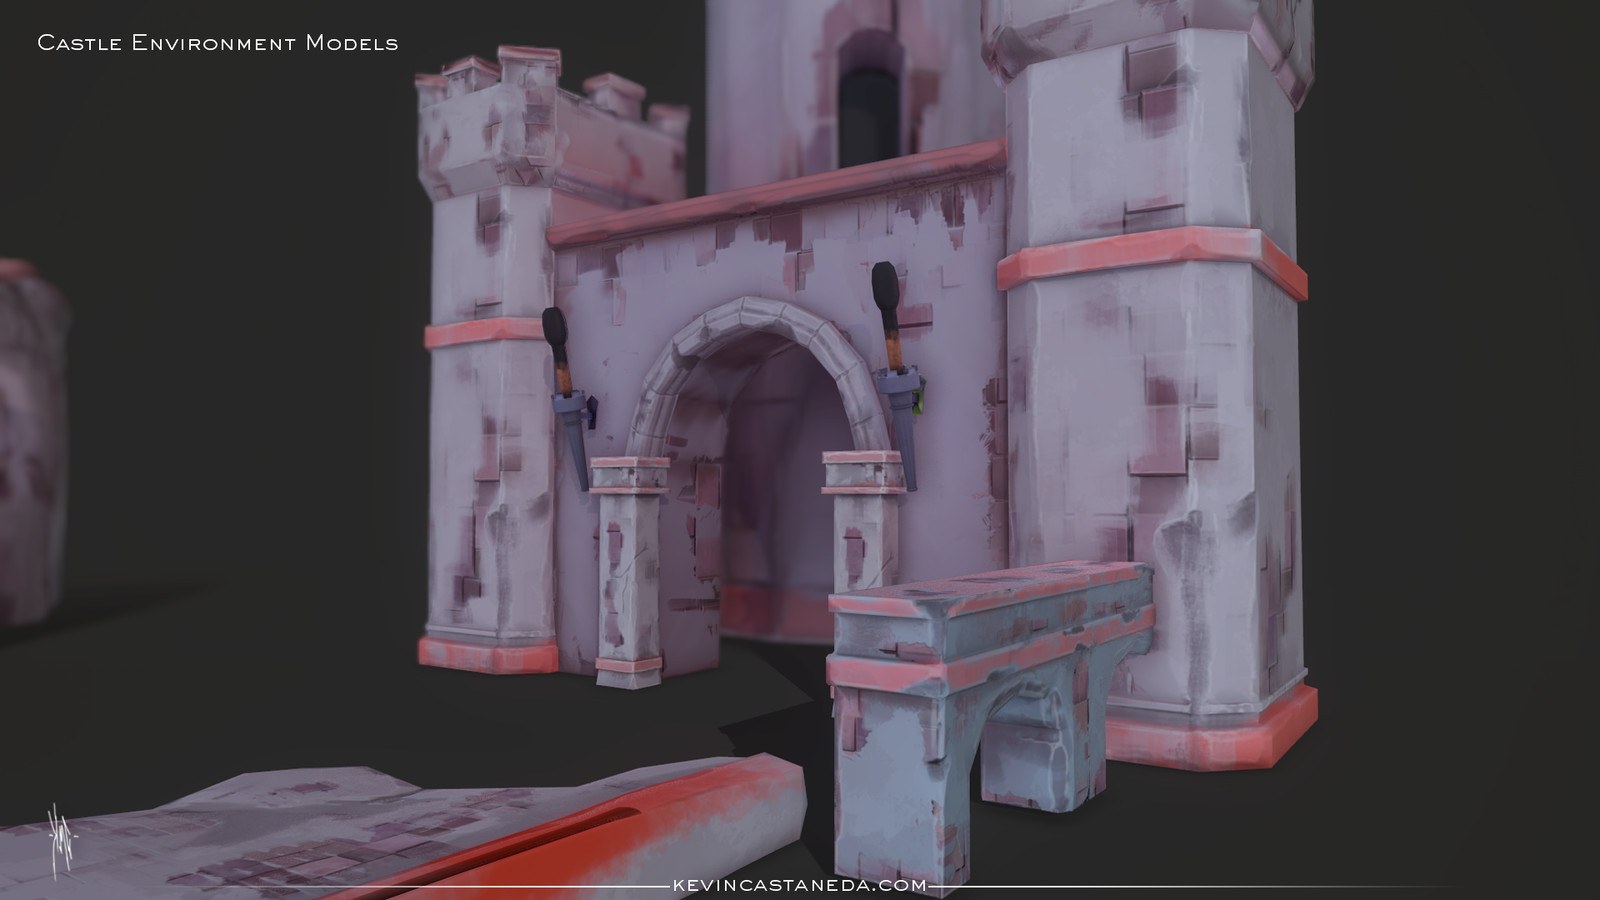 closer look at the castle environment.